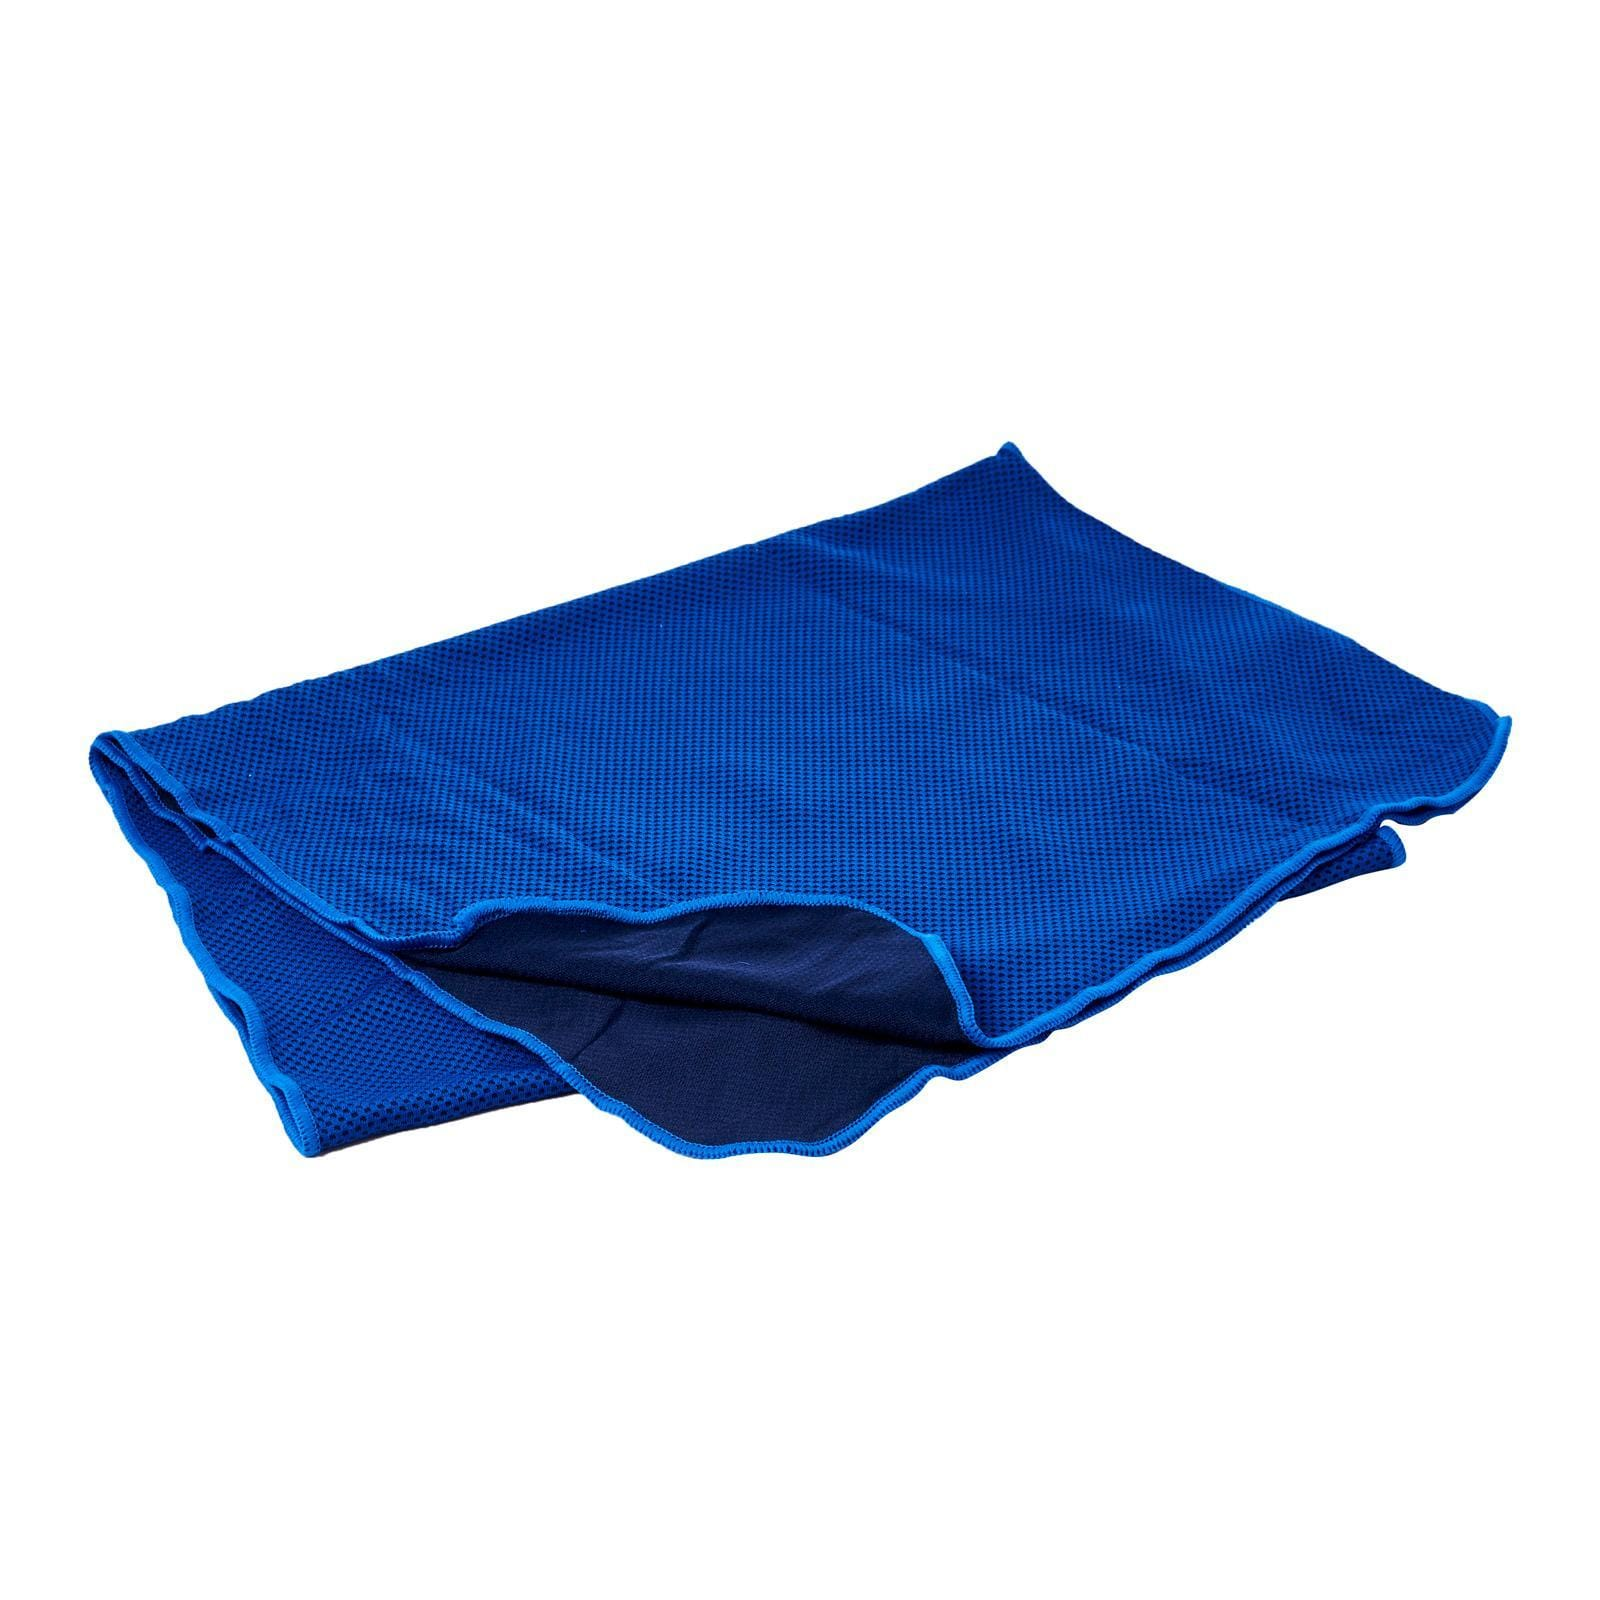 Coolite Sports Towel In Cobalt Blue - FUNFIT